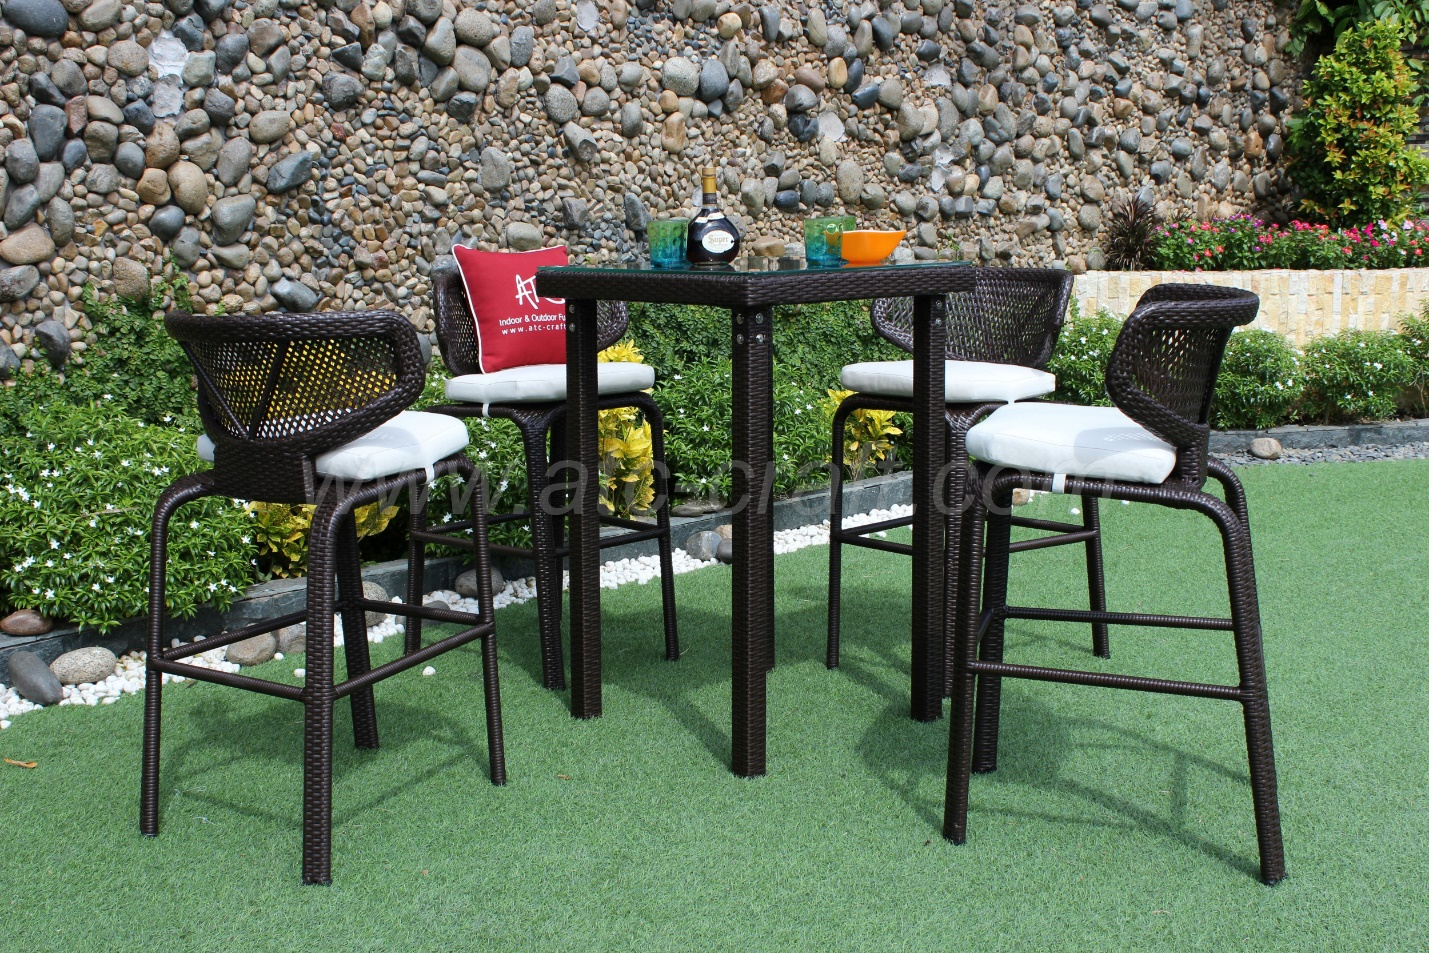 Price and quality are both crucial aspects of an outdoor furniture set